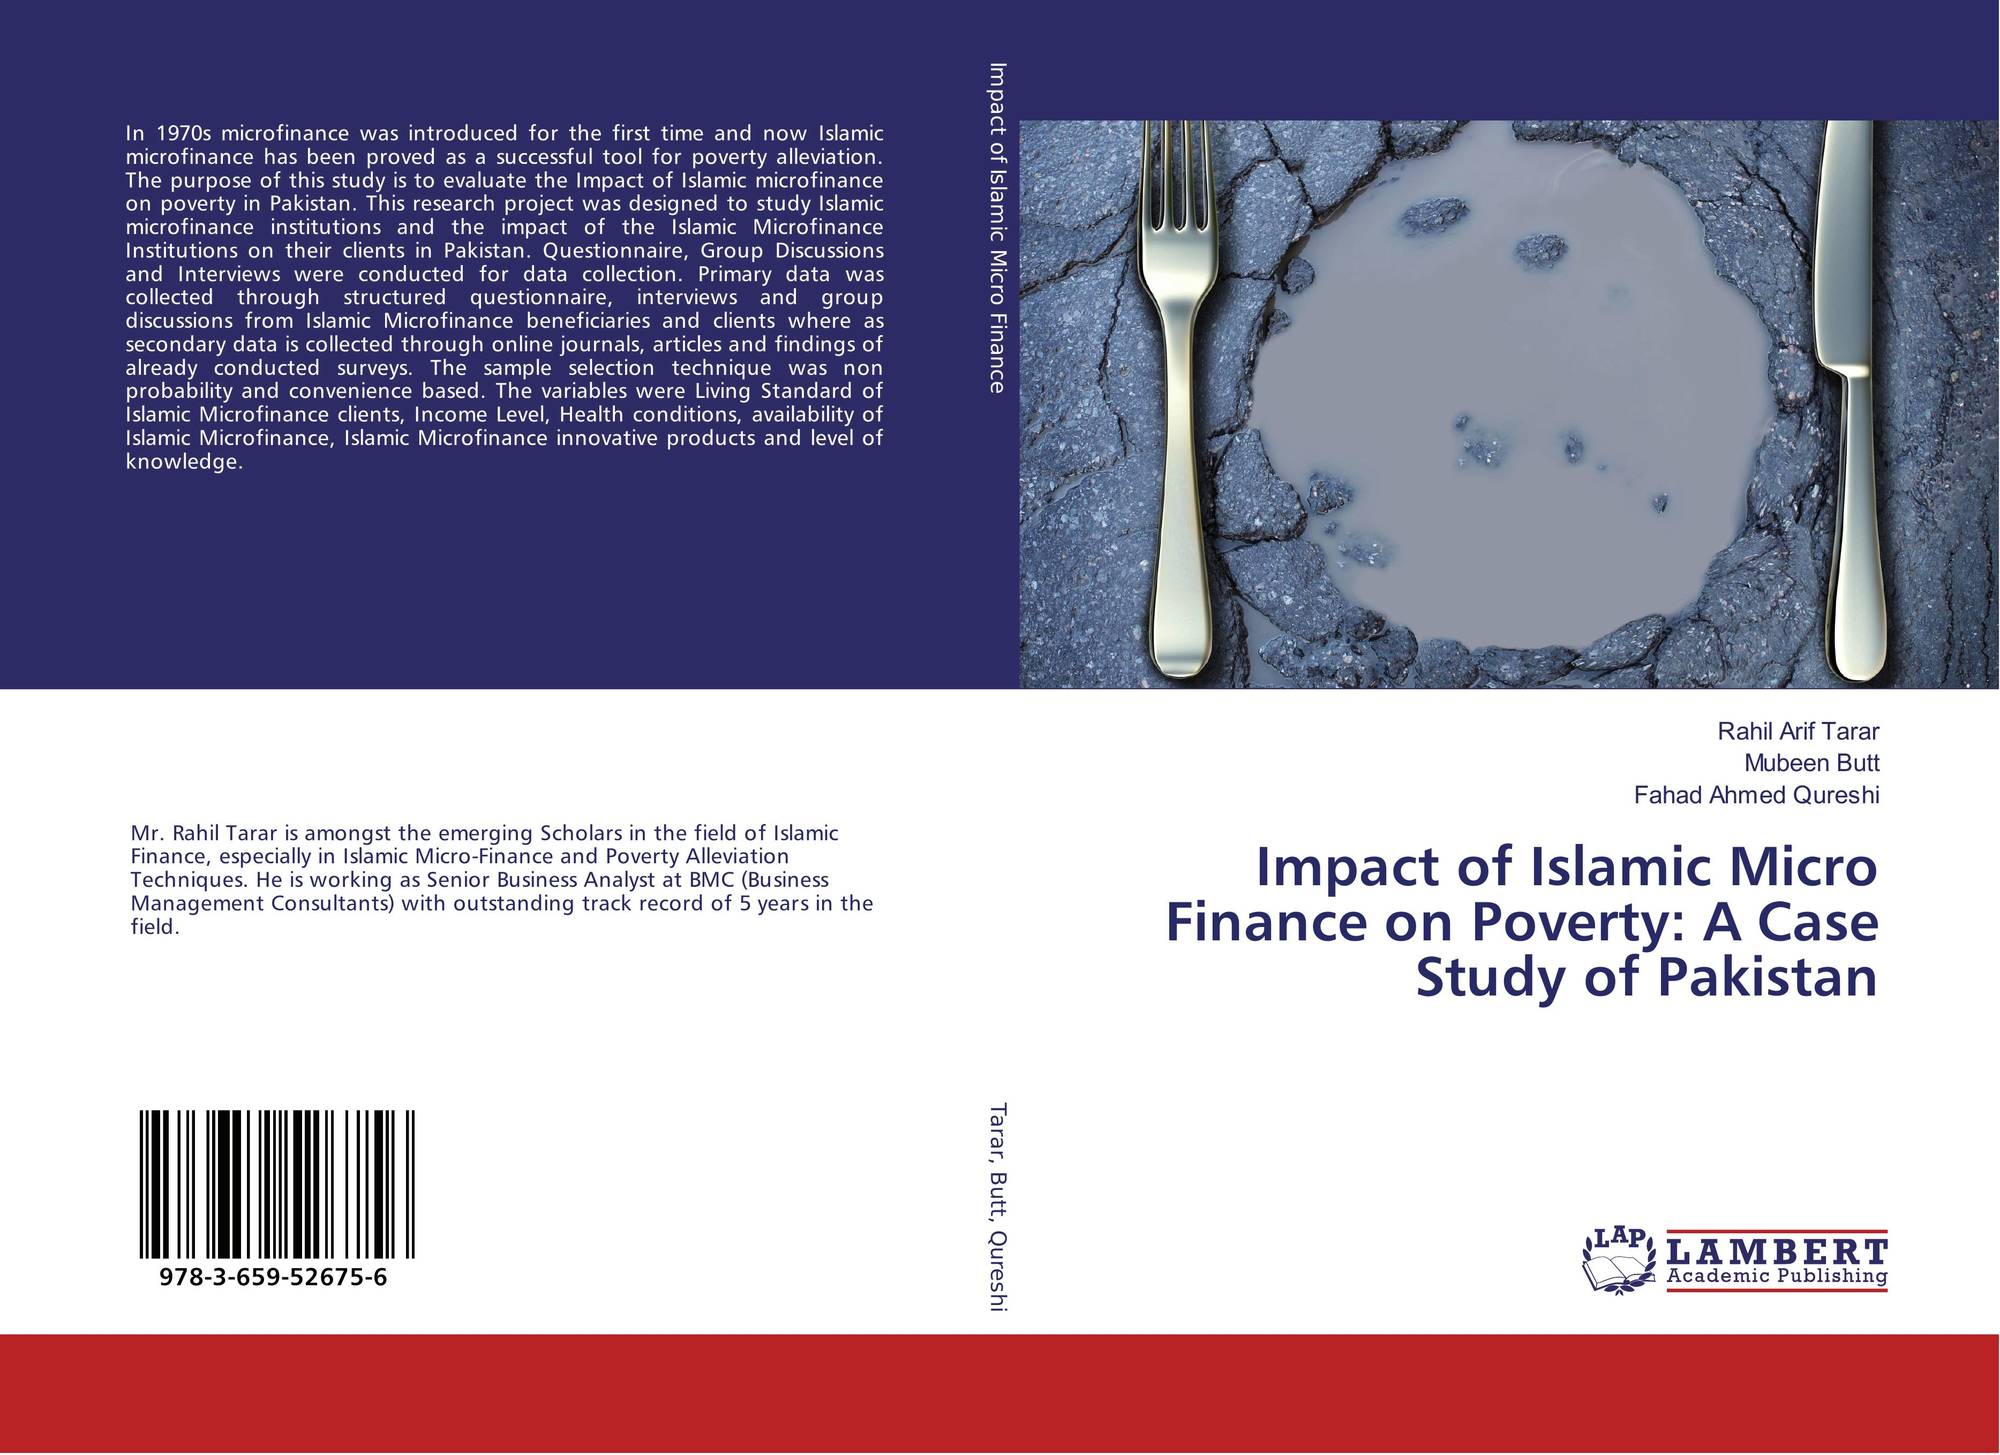 a comparative study of legal and regulatory framework for islamic micro-financing in pakistan and ma This paper aims to thoroughly examine the extent to which the current legal and regulatory framework is inclusive towards islamic banking and finance (ibf) practices in the attempts to introduce ibf as a significant component in the mozambique's financial system.